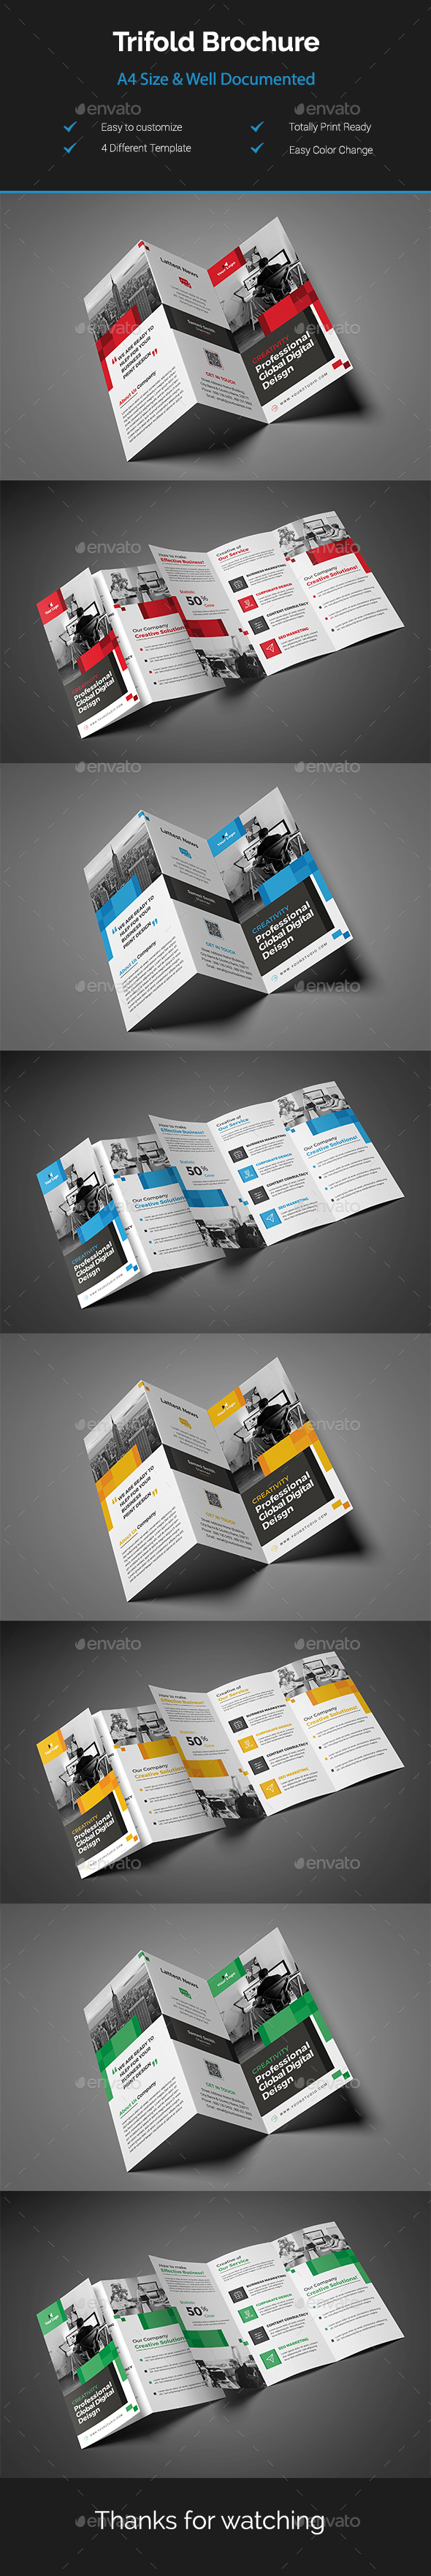 GraphicRiver Trifold Brochure 21107836